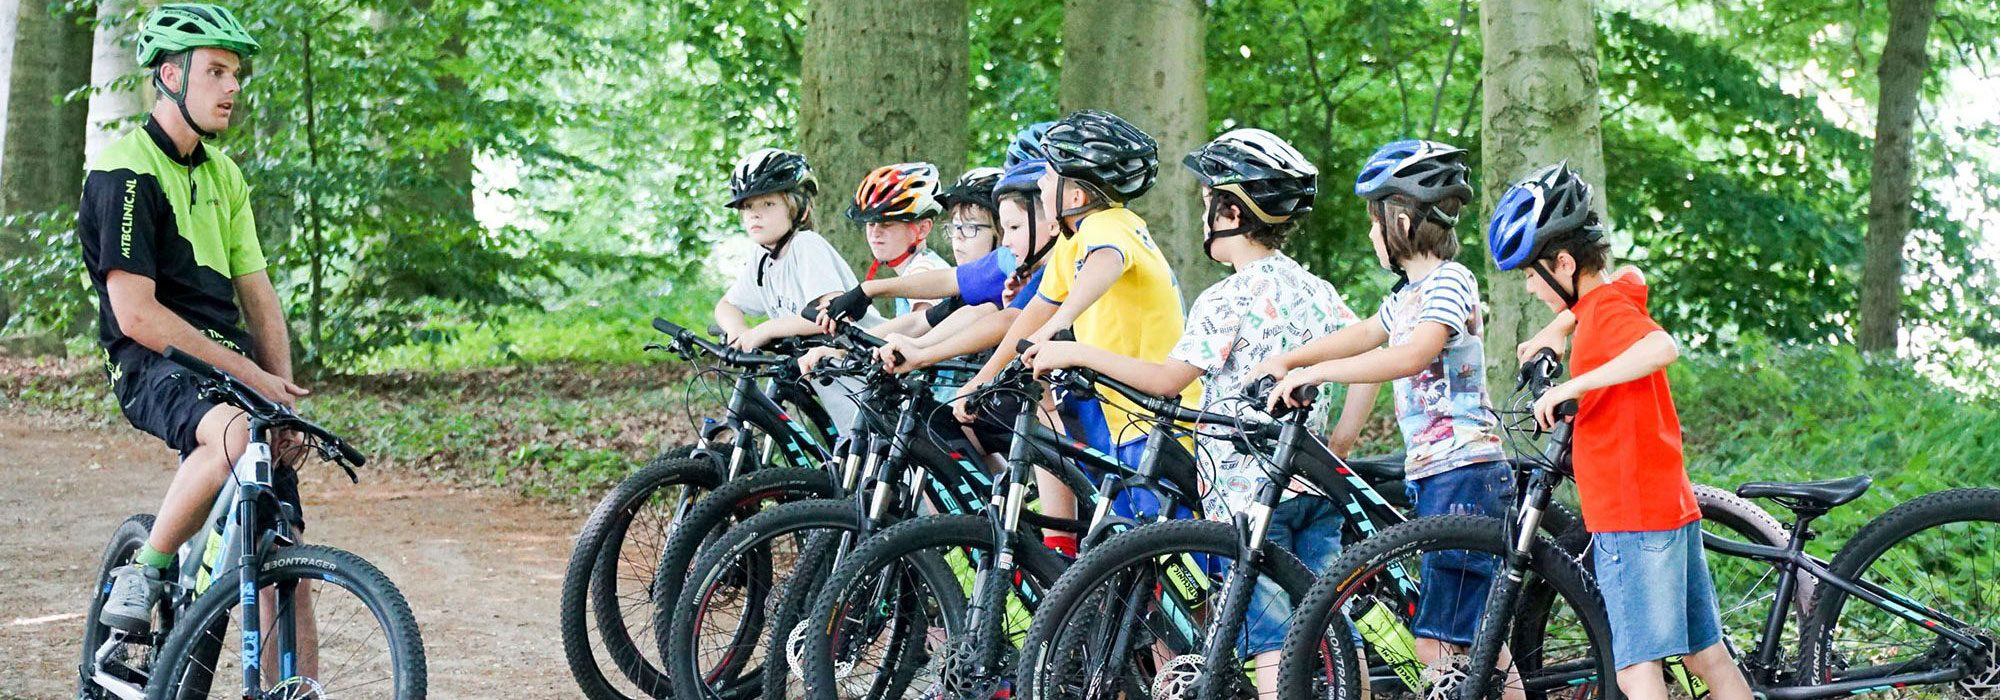 mtbclinic.nl mountainbike clinics kids